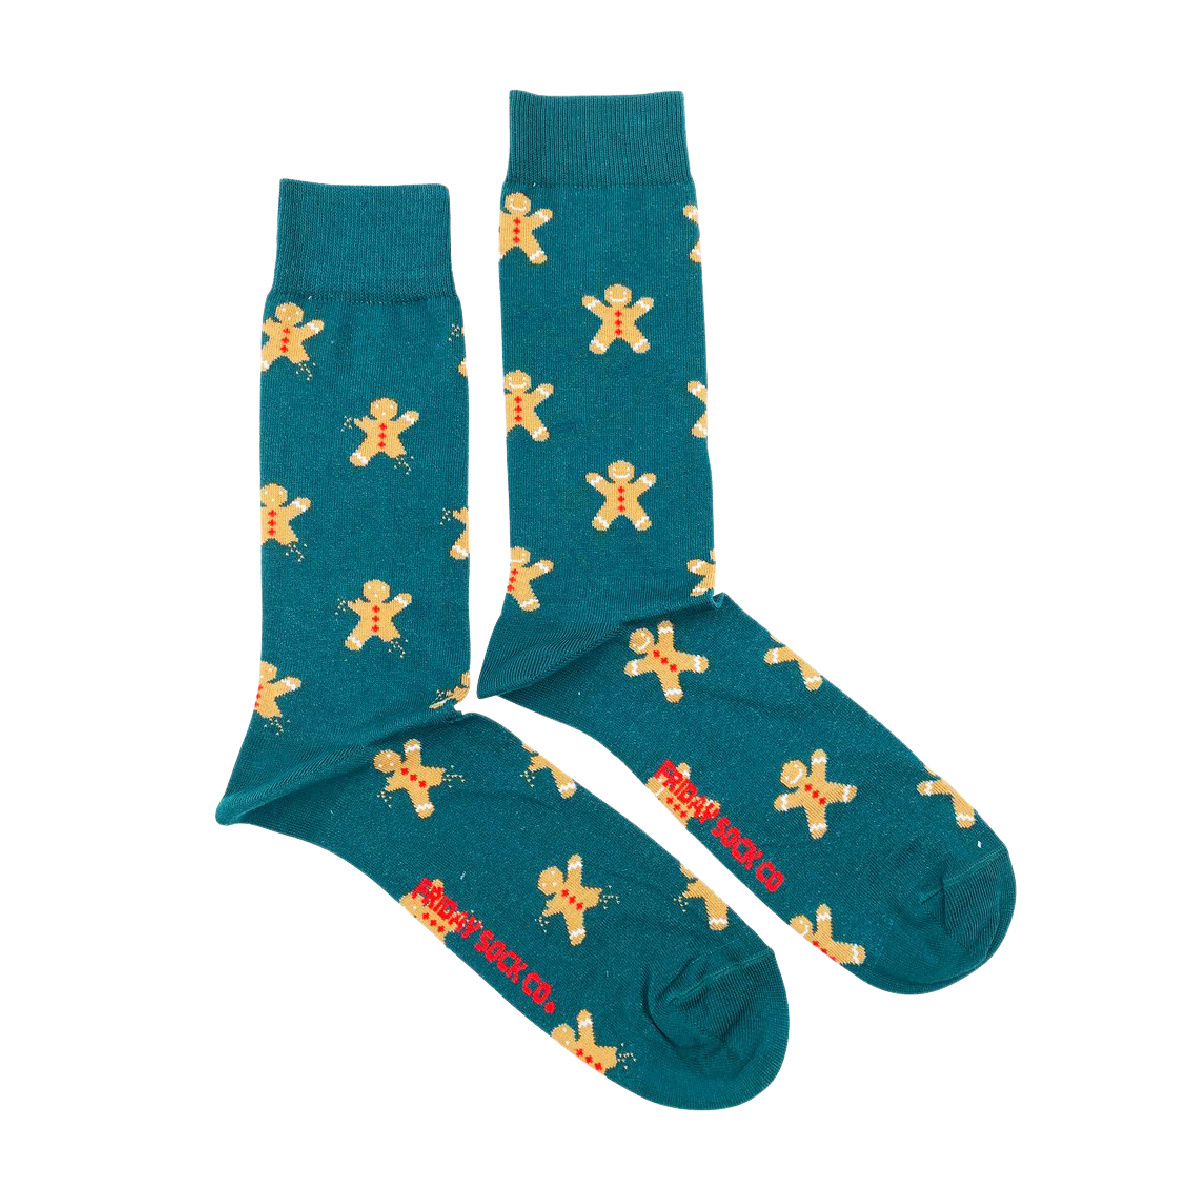 Friday Sock Co. Friday Sock Co. Men's Ugly Christmas Gingerbread Cookie M 7 - 12 (W 8- 13)